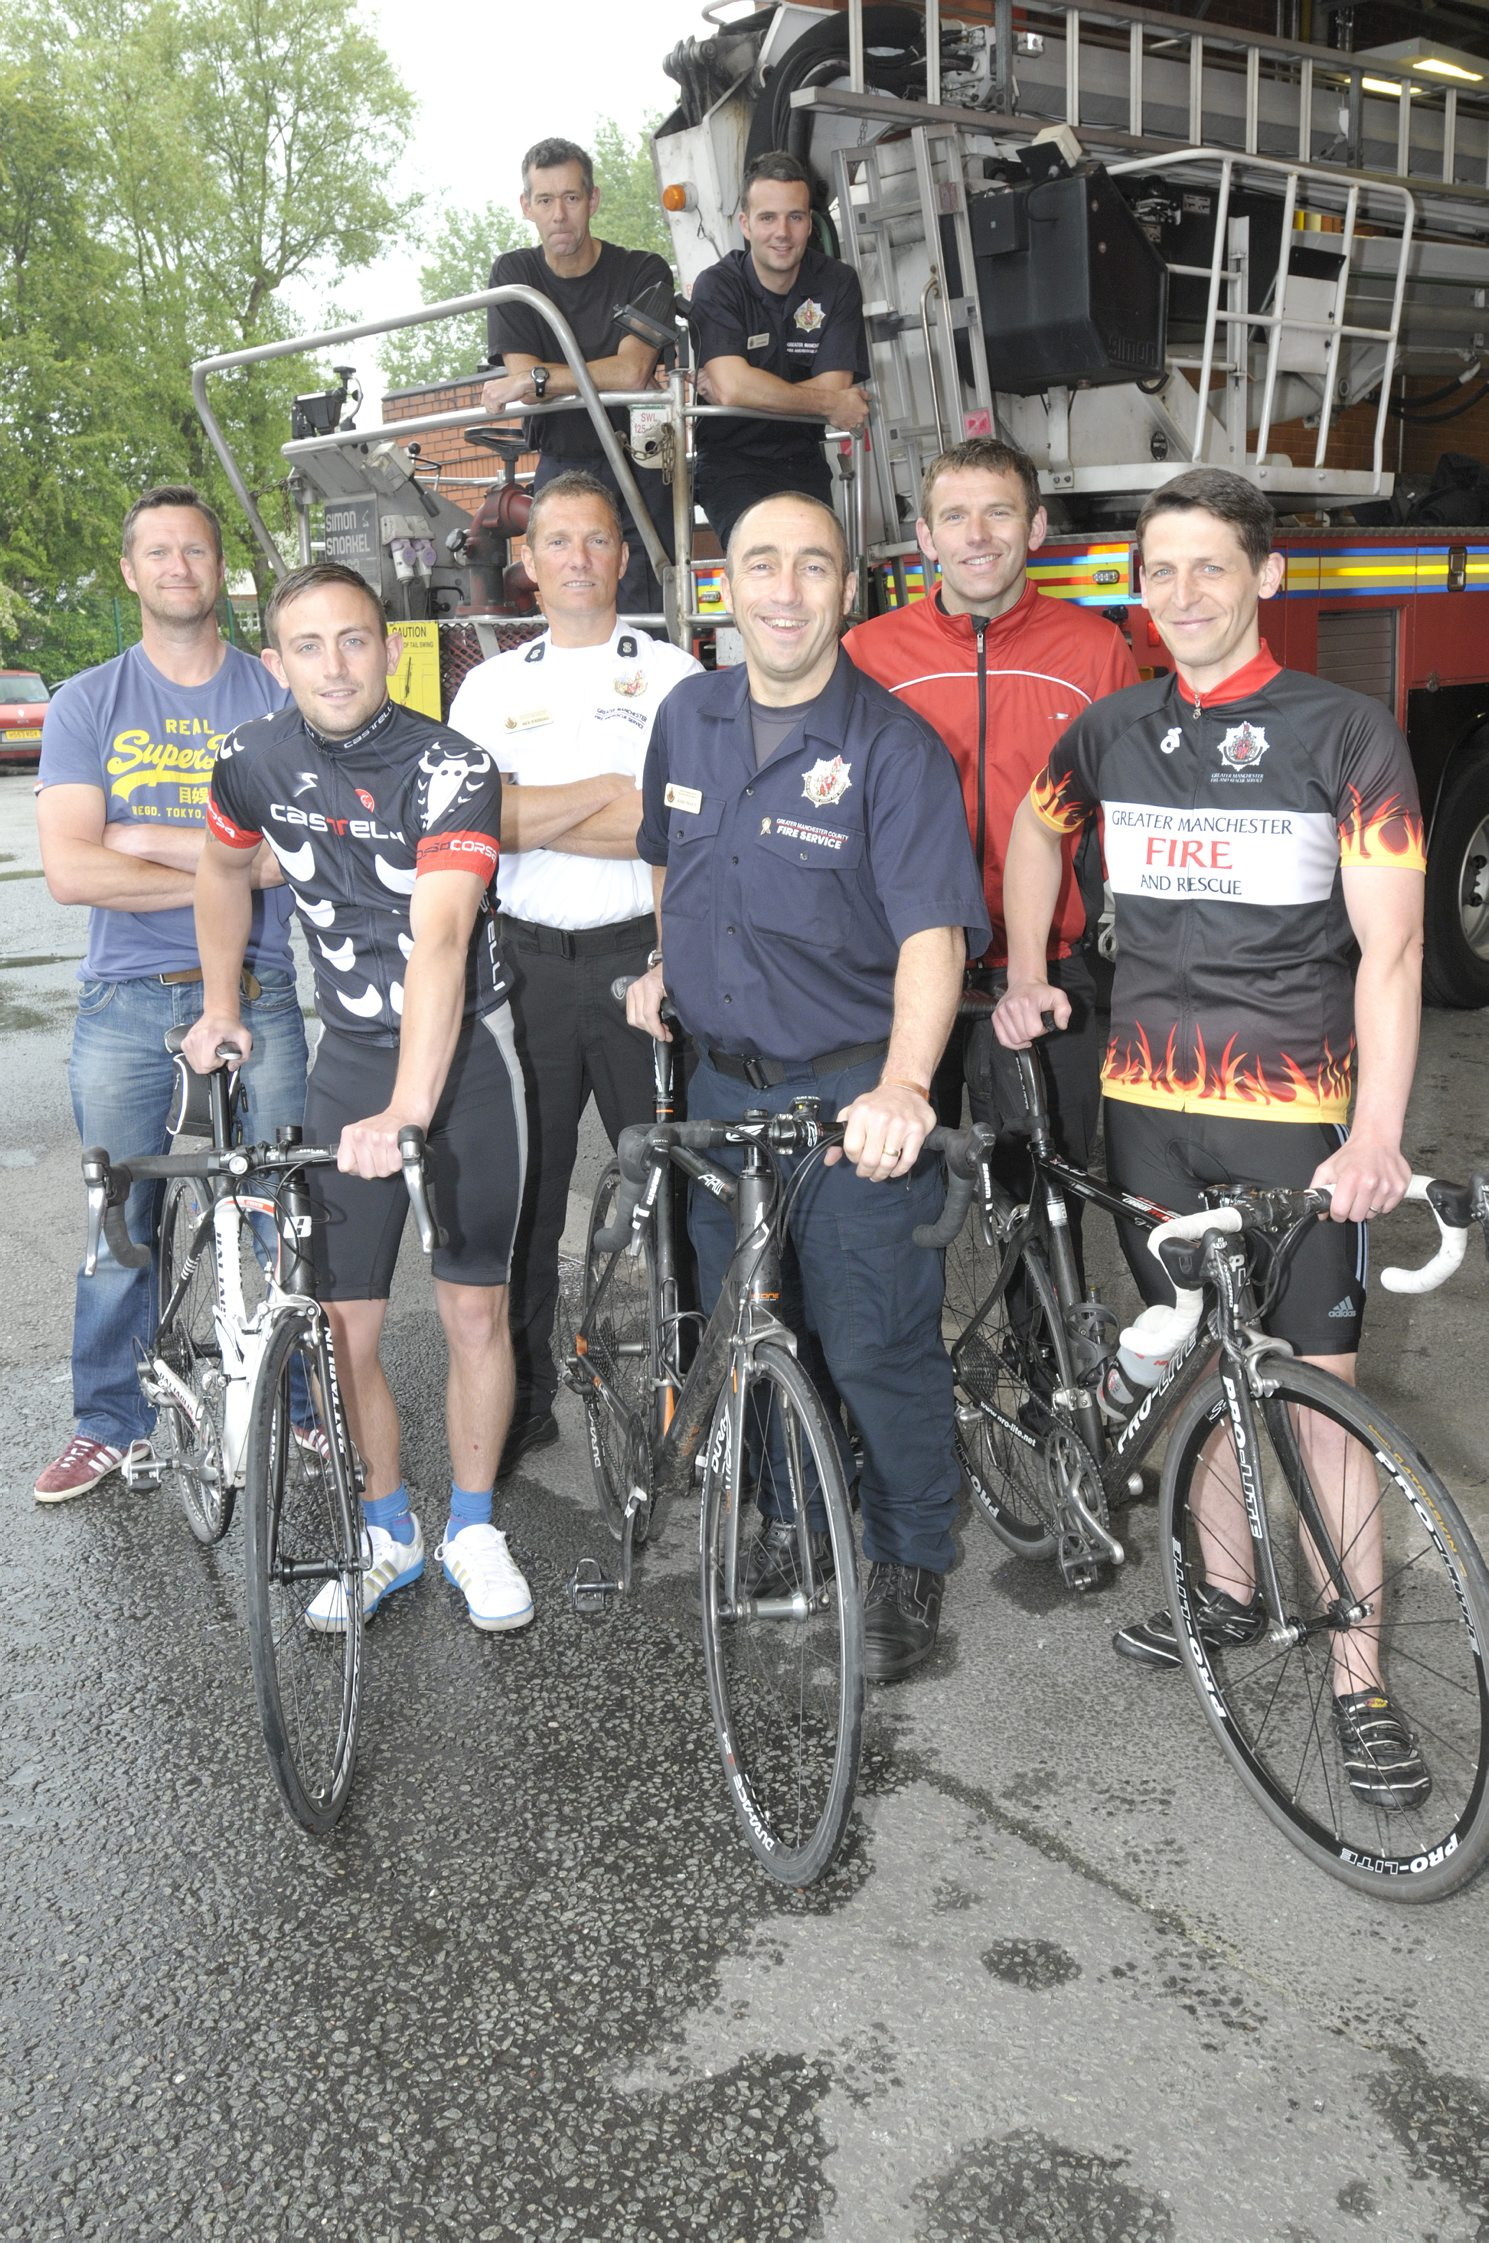 The group of fundraising firefighters